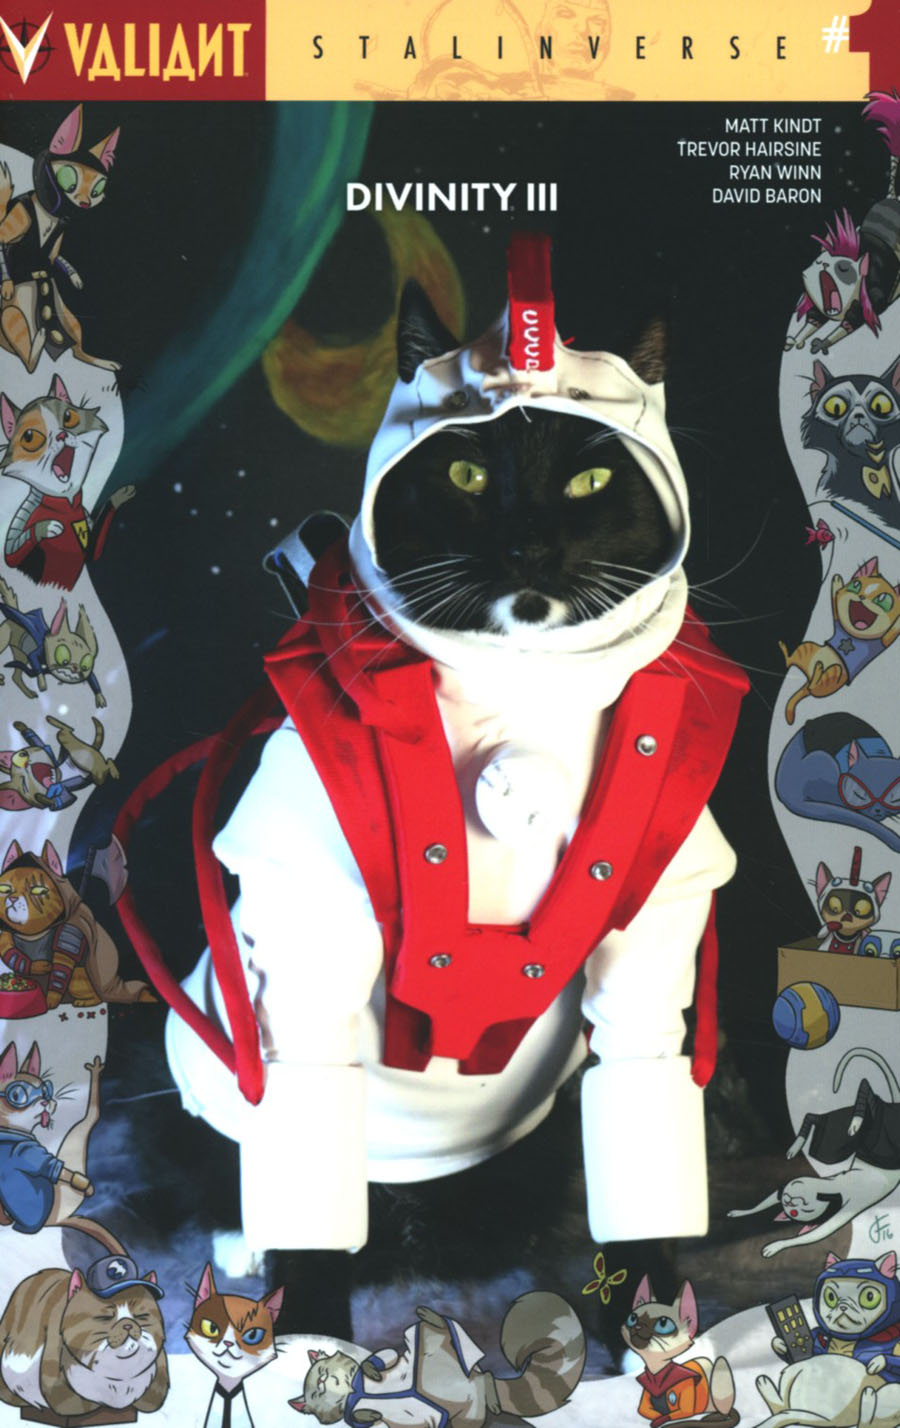 Divinity III Stalinverse #1 Cover D Variant Valiant Cat Cosplay Cover